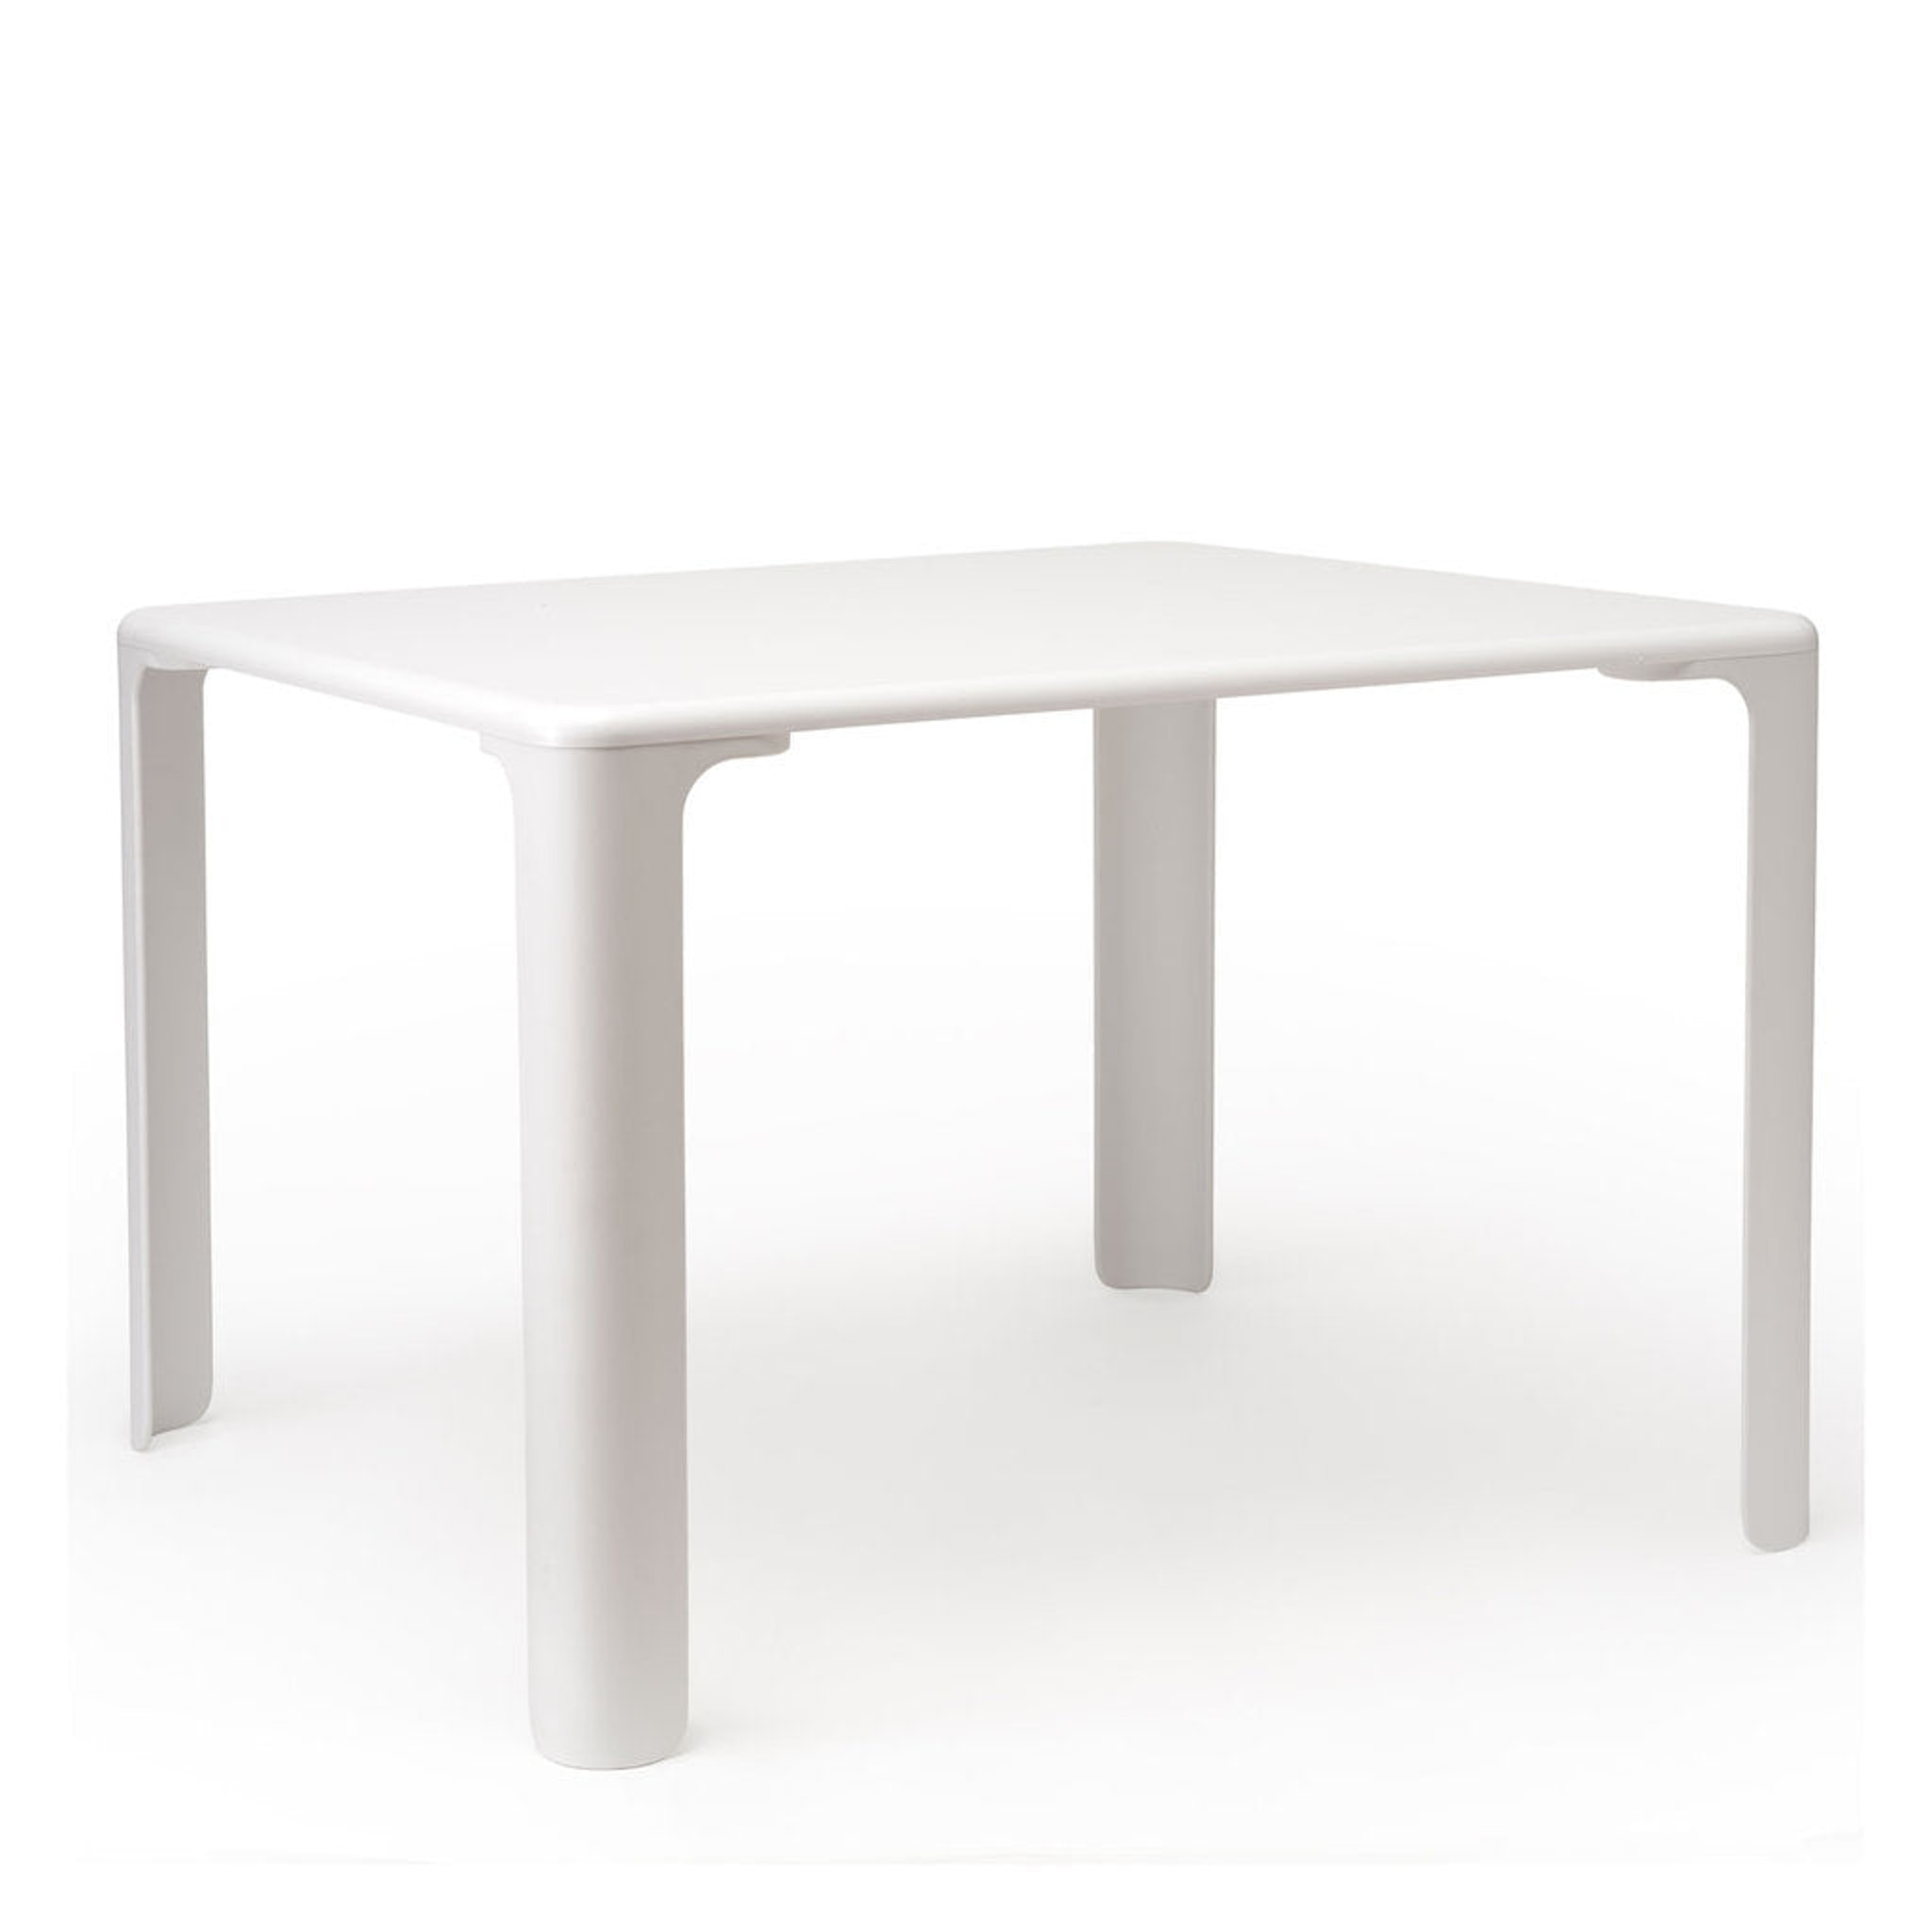 Linus Table by Javier Mariscal